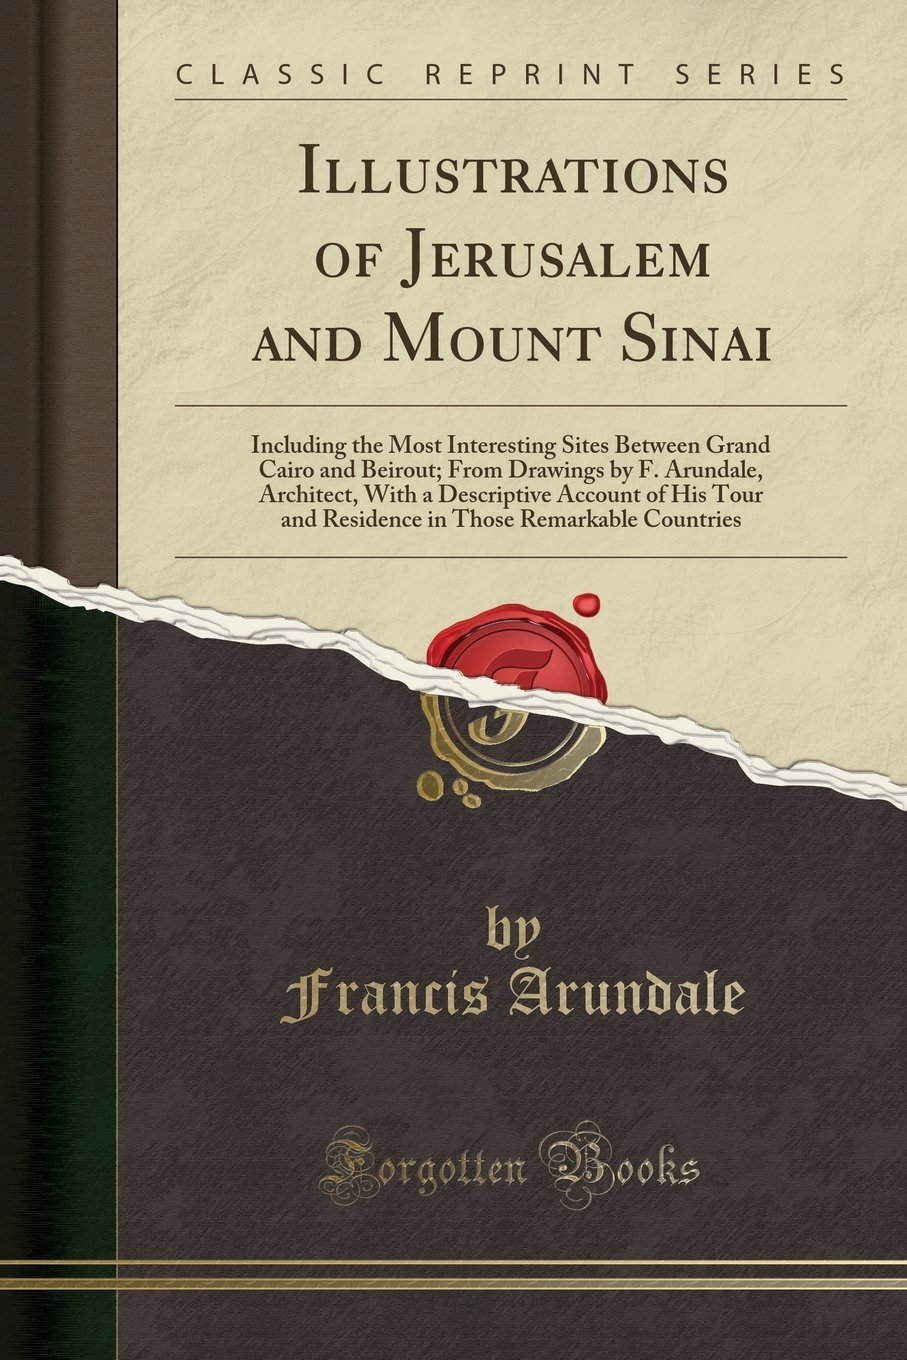 Illustrations of Jerusalem and Mount Sinai: Including the Most Interesting Sites Between Grand Cairo and Beirout; From Drawings by F. Arundale. and Residence in Those Remarkable Countries